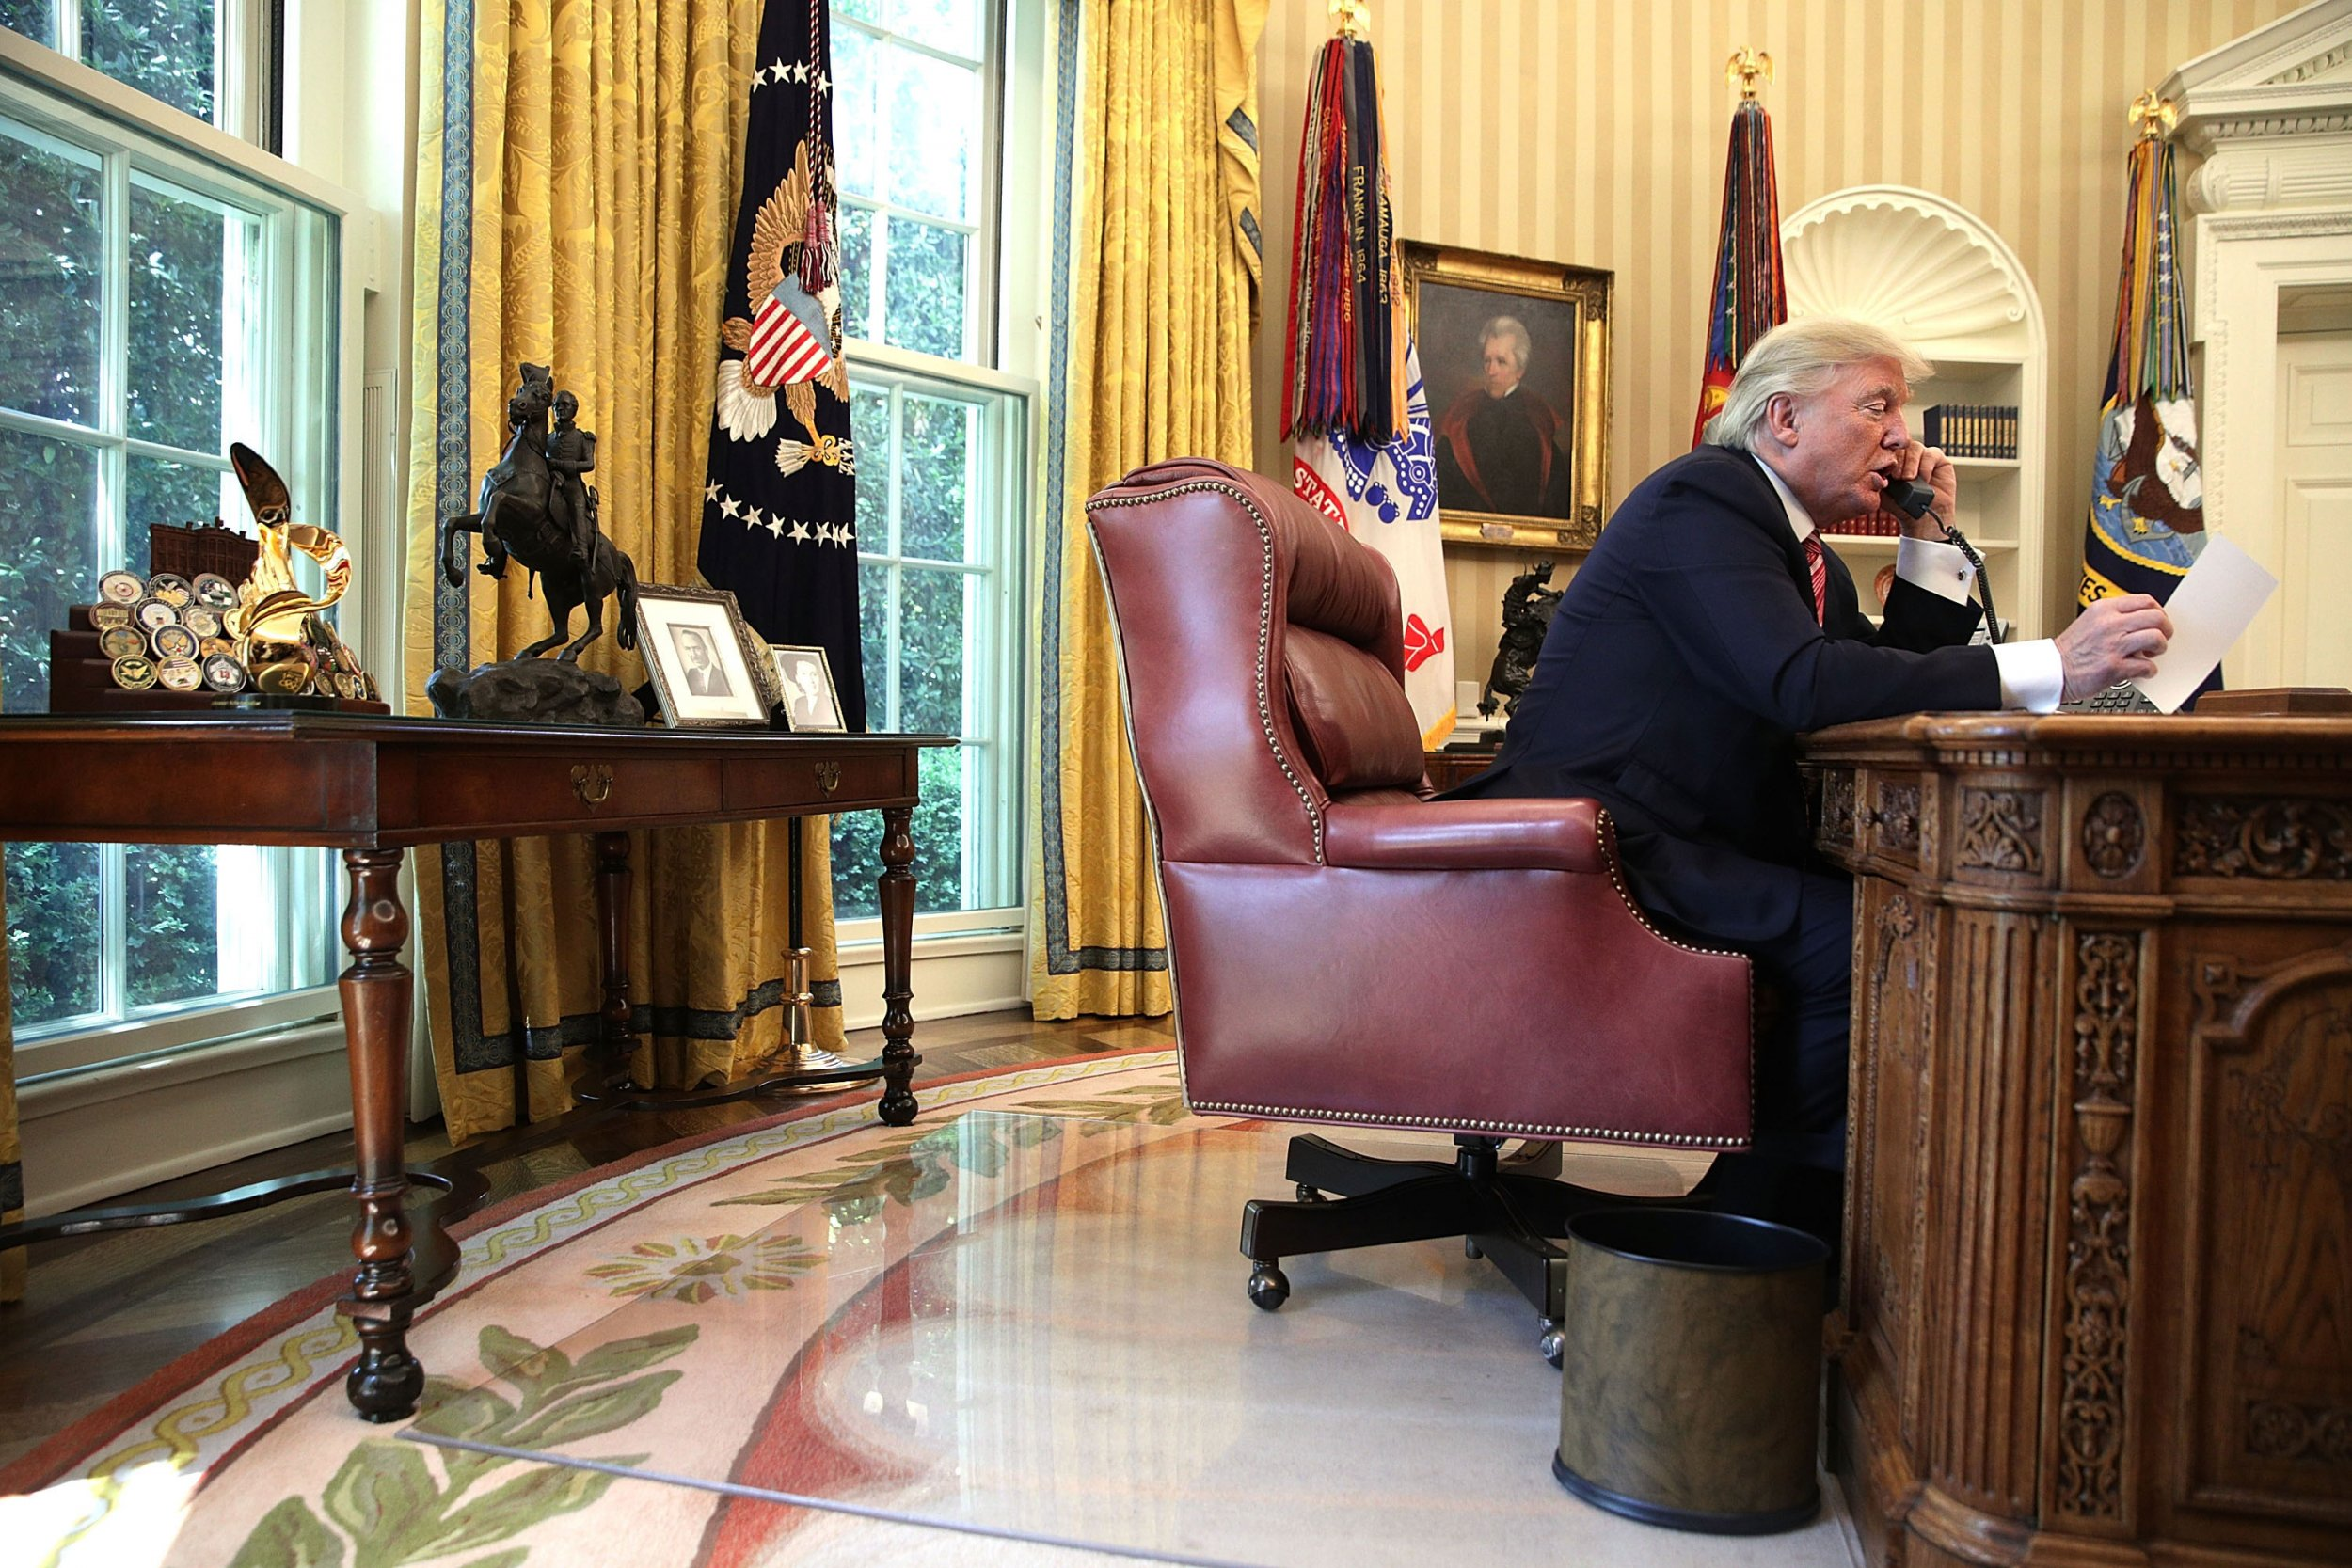 Trump S White House Redecoration Cost 1 75 Million In Furniture Wallpaper And More Report